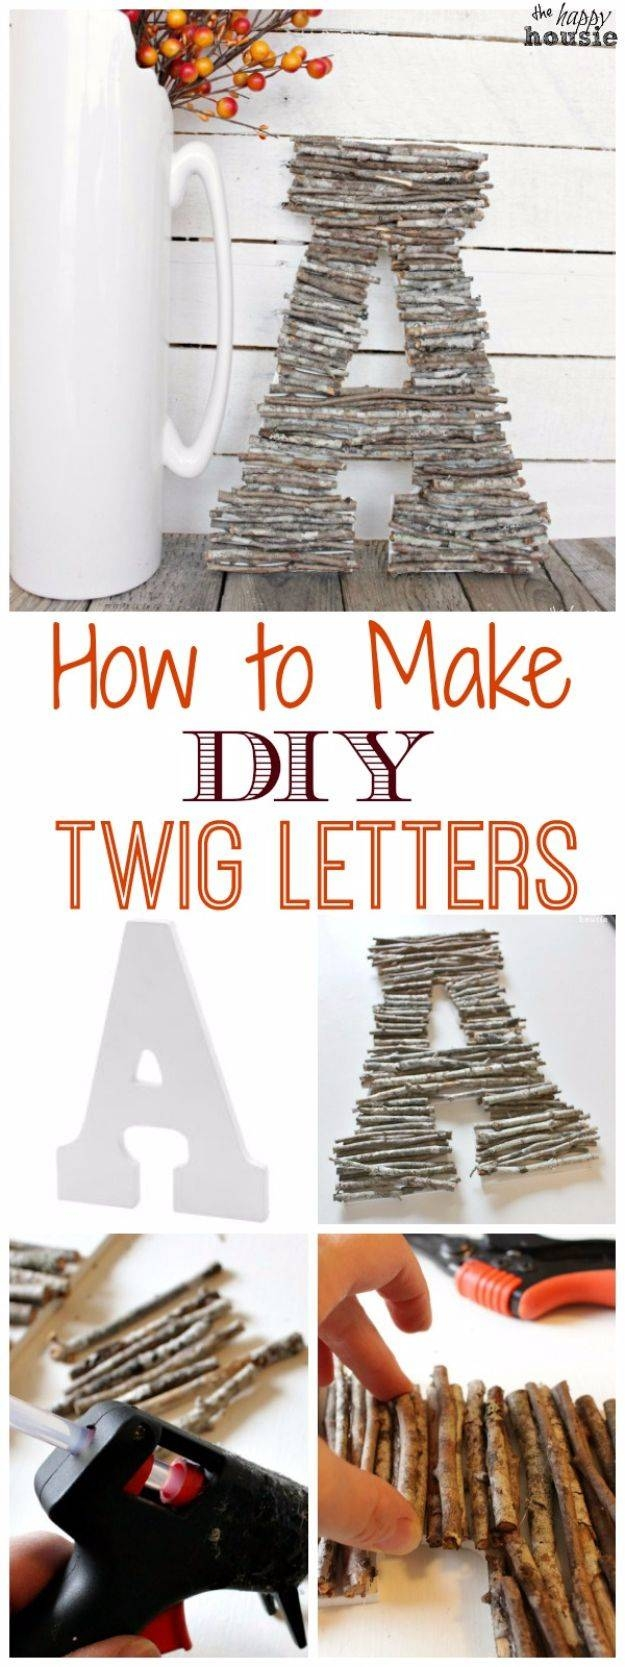 25+ Unique Letter Wall Art Ideas On Pinterest | Letters On Wall In Most Current Pinterest Wall Art Decor (View 7 of 25)